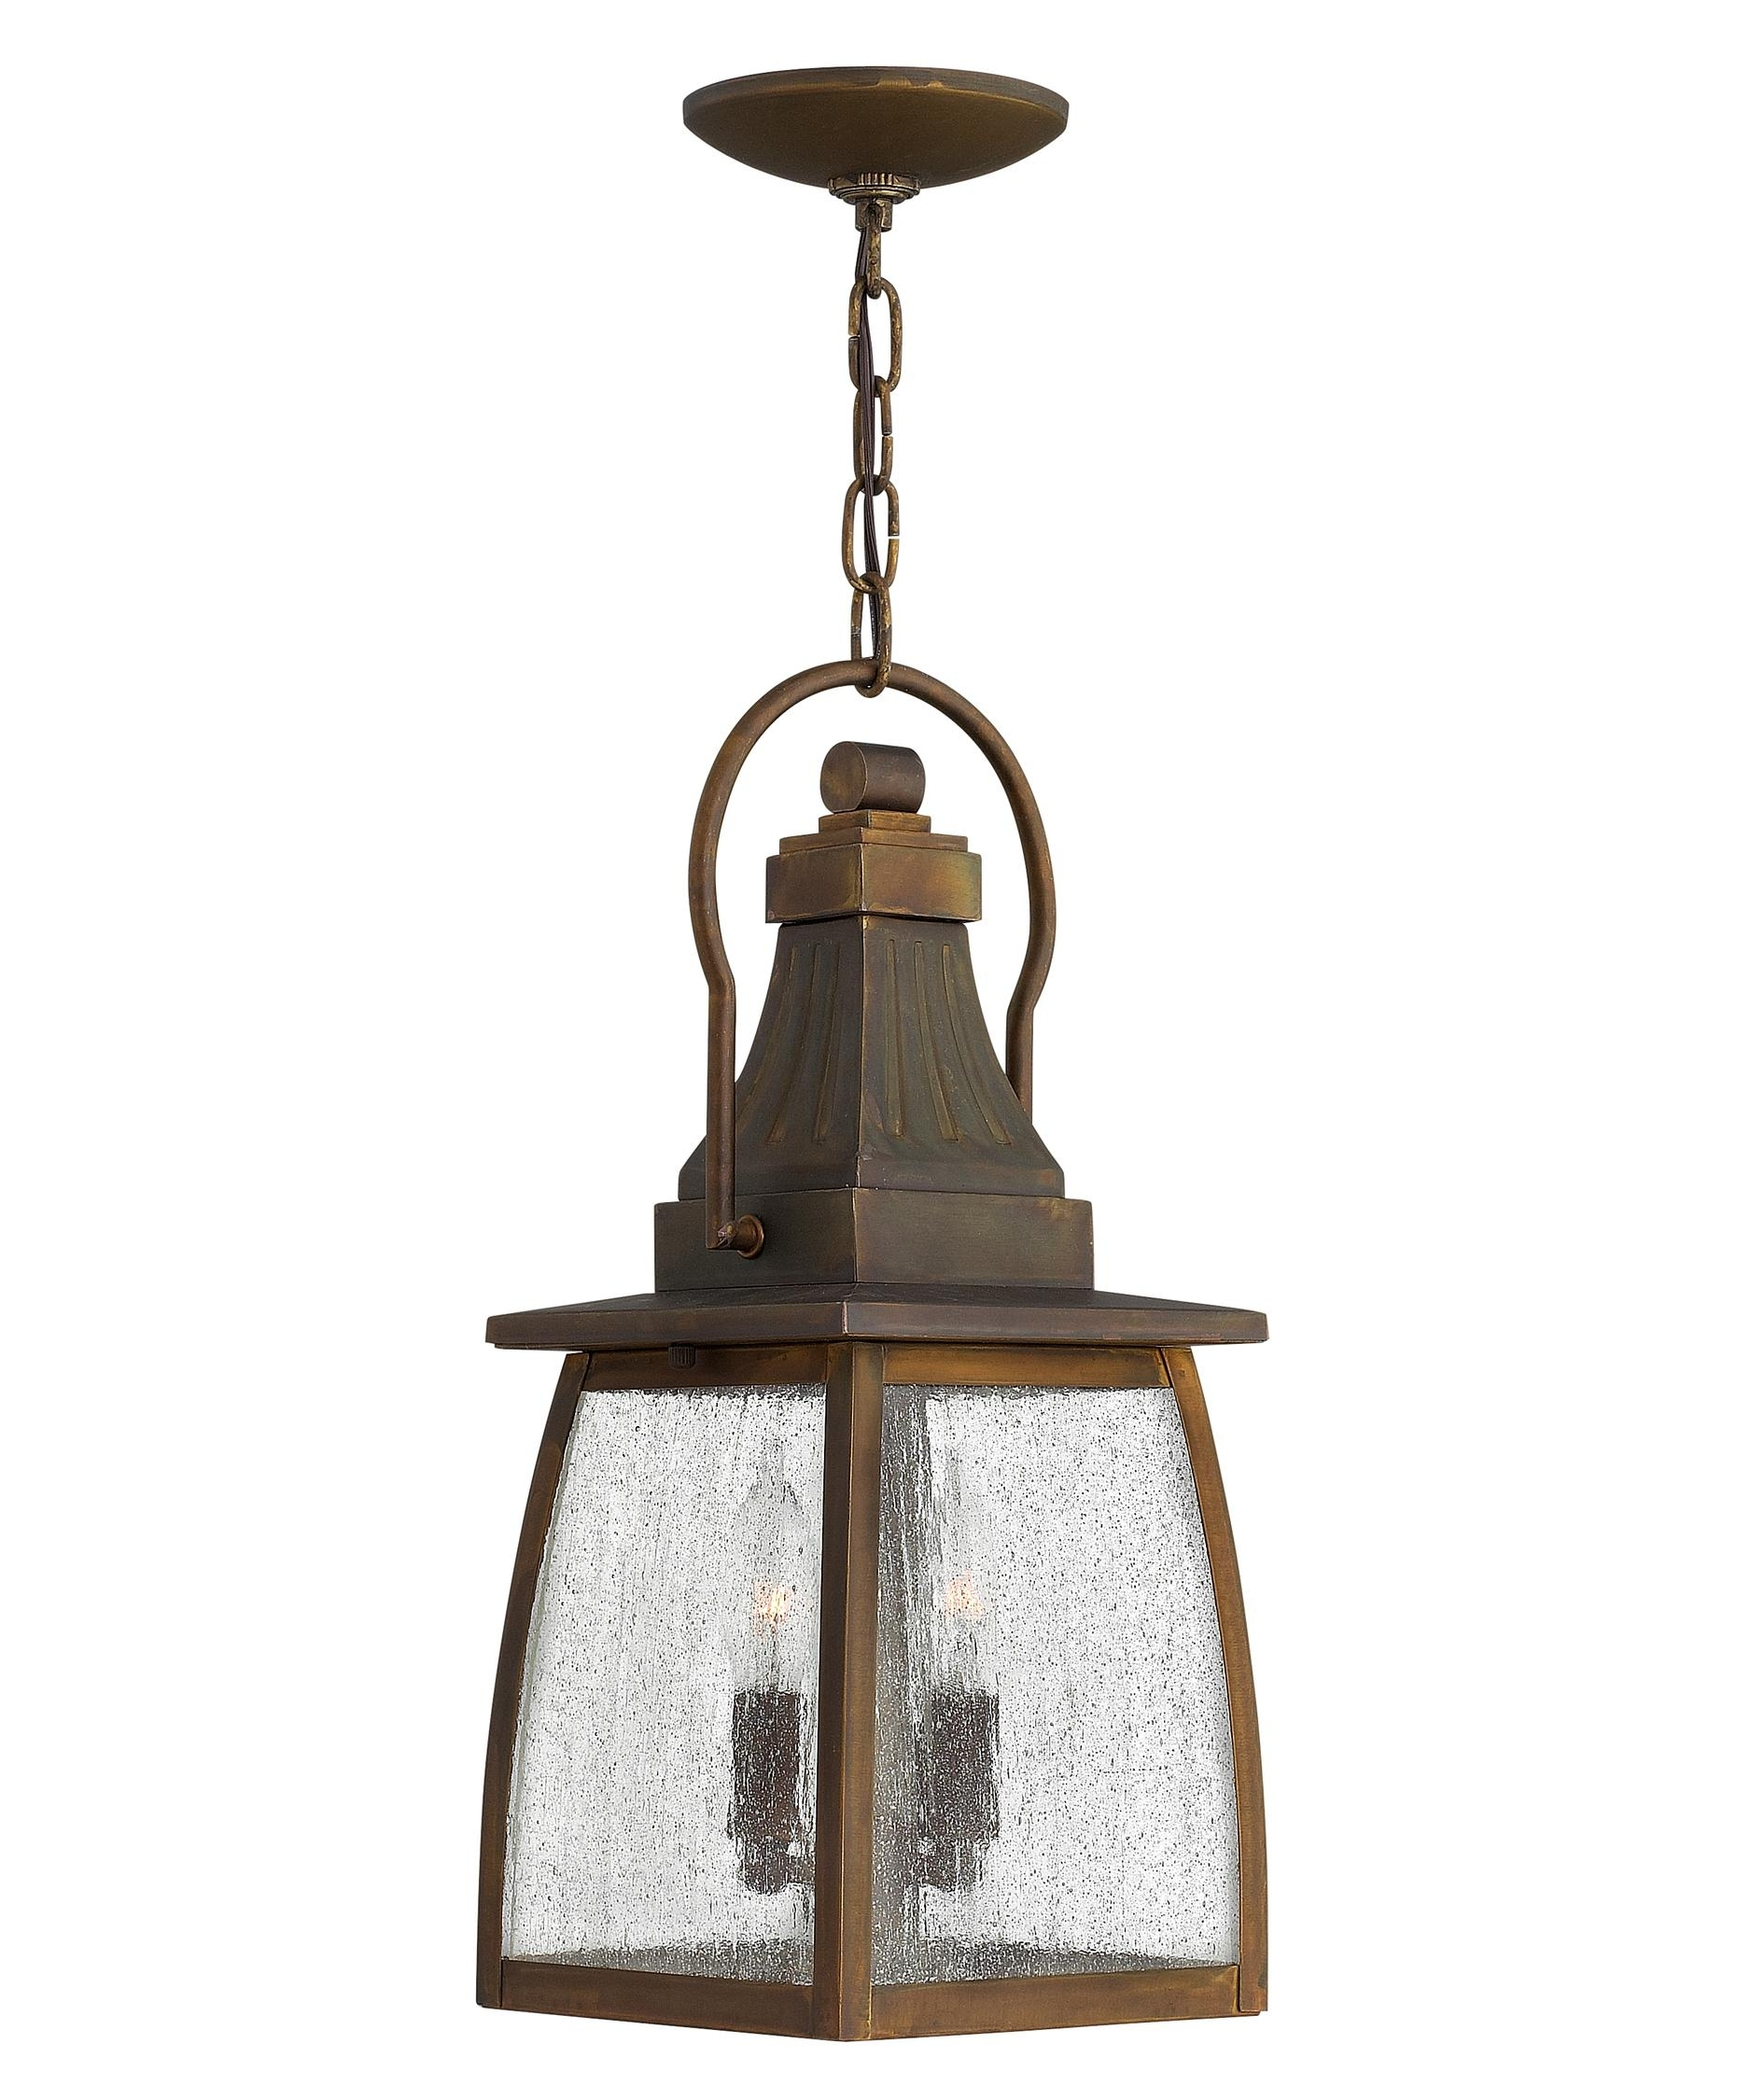 2018 Hinkley Outdoor Hanging Lights Intended For Hinkley Lighting 1202 Montauk 7 Inch Wide 2 Light Outdoor Hanging (Gallery 7 of 20)